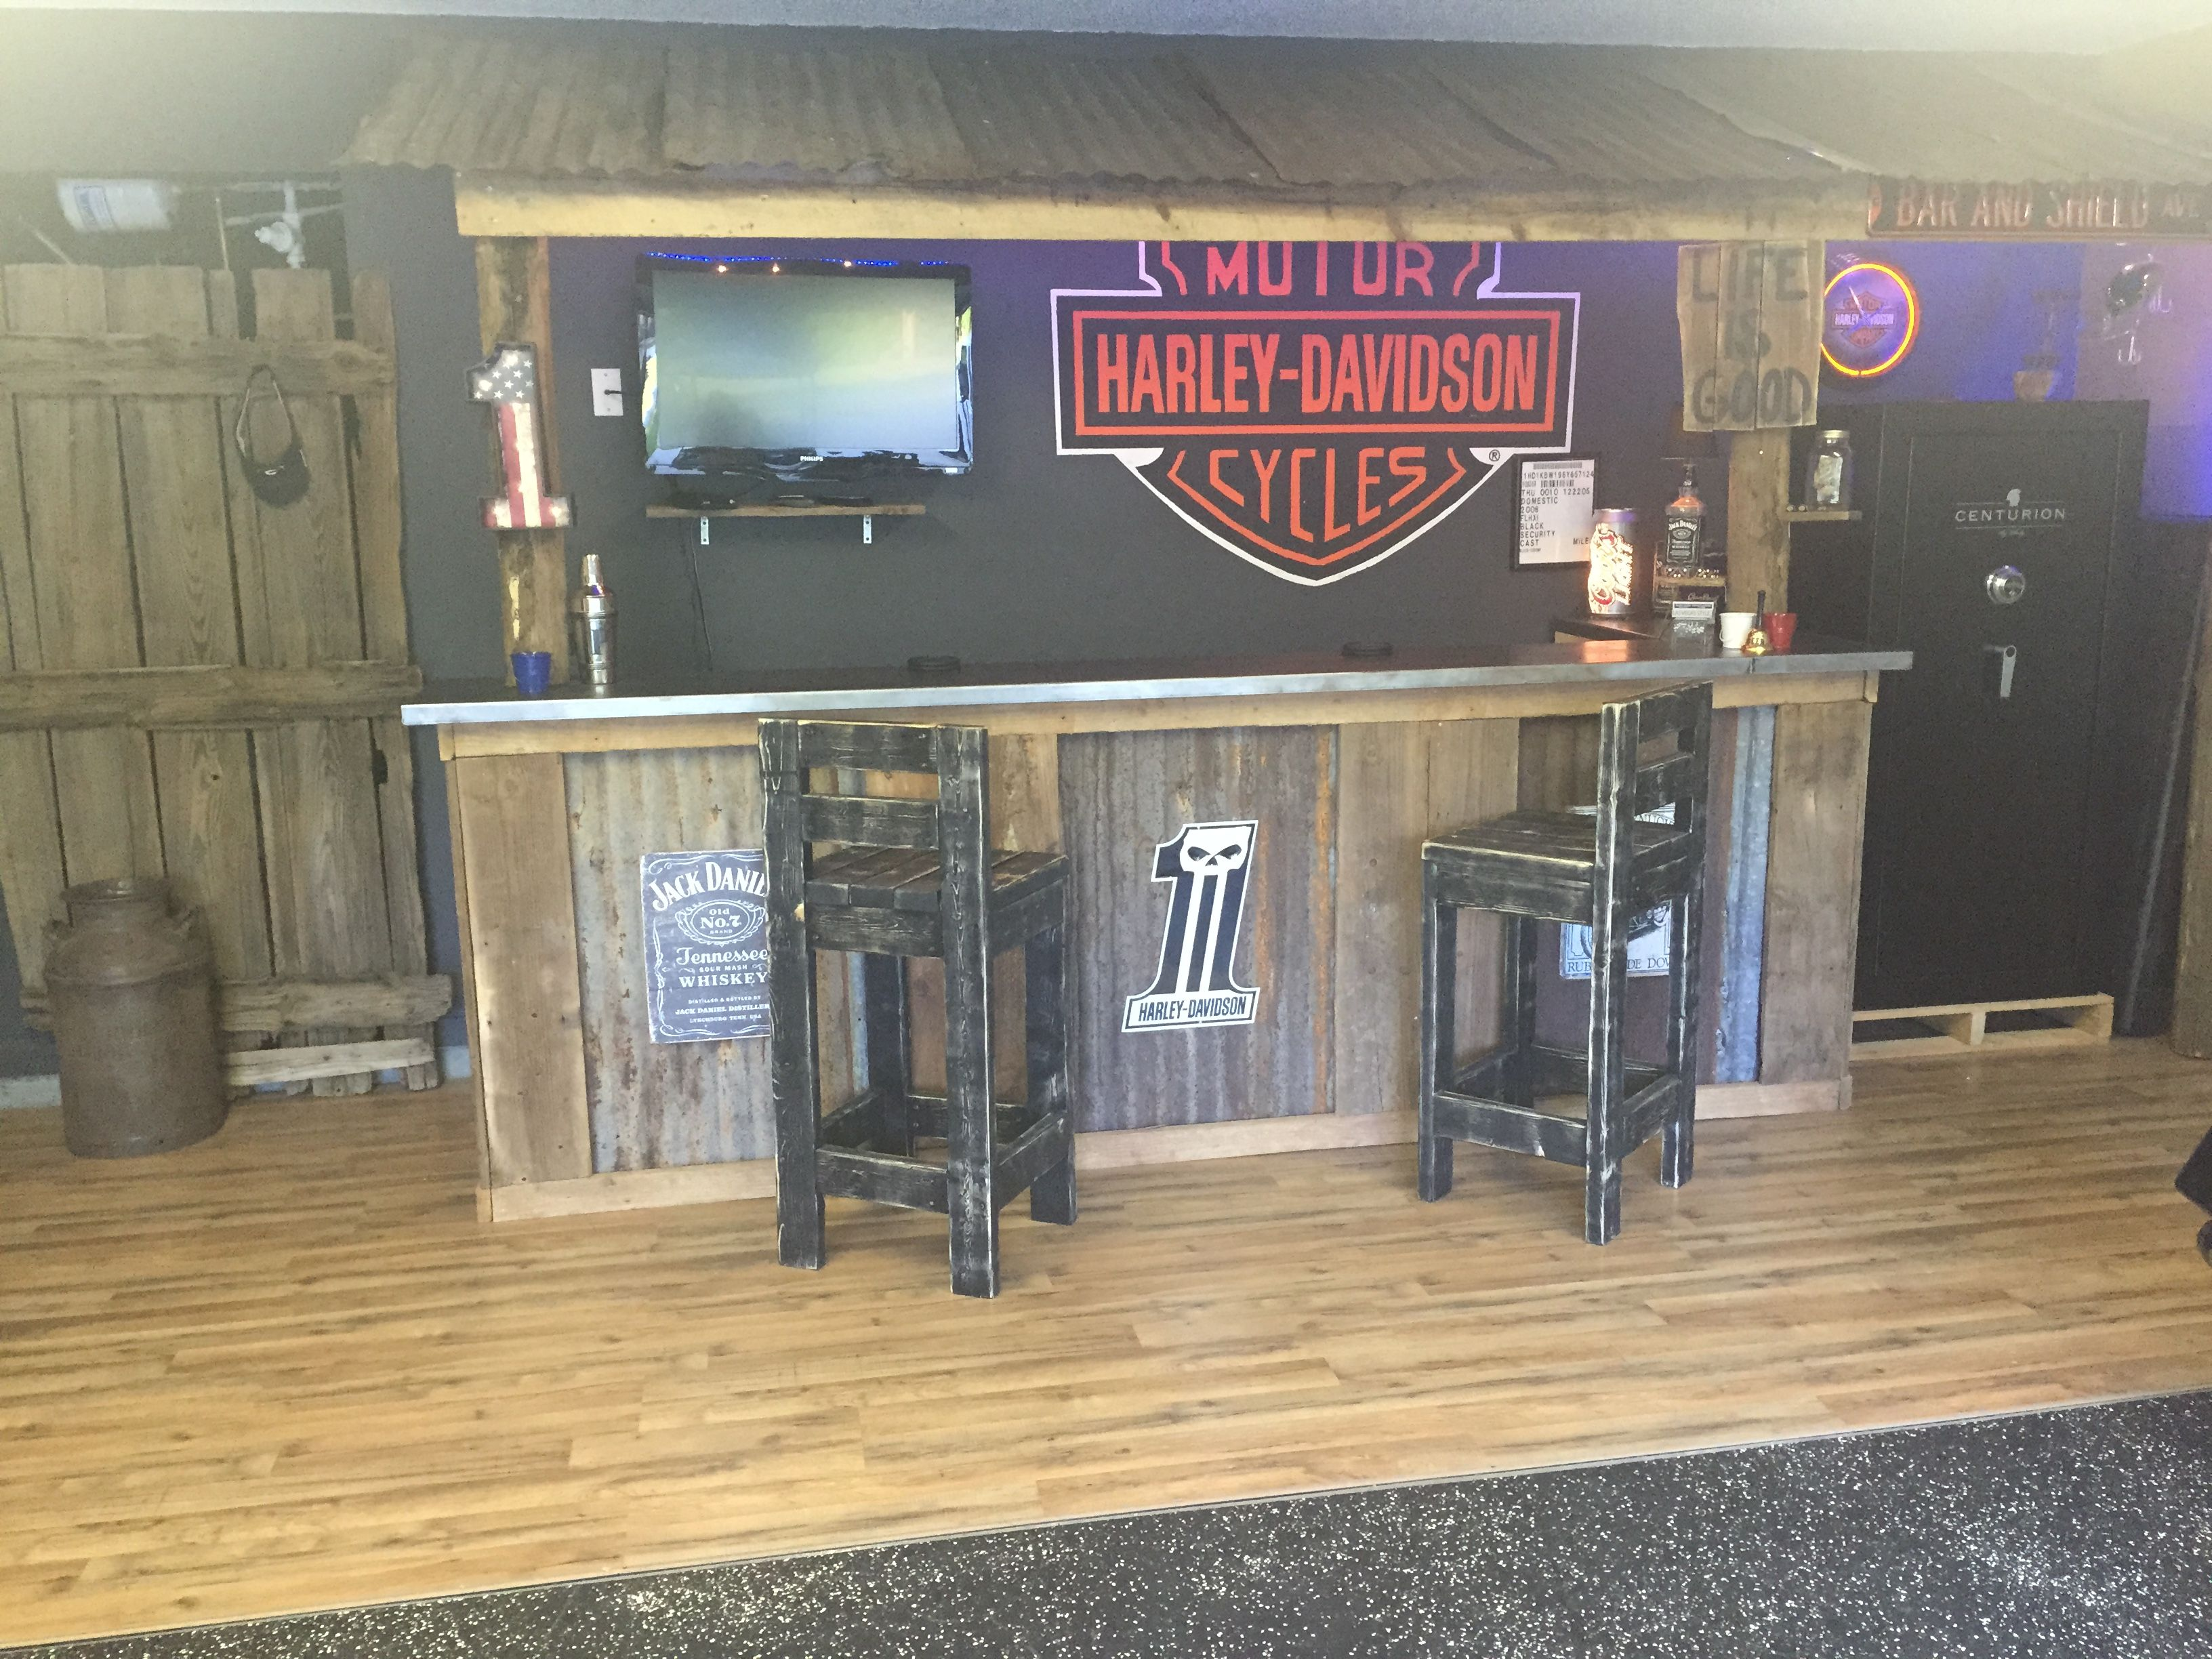 Man Cave Basement Bar : Garage bar man cave basement bars rustic harley